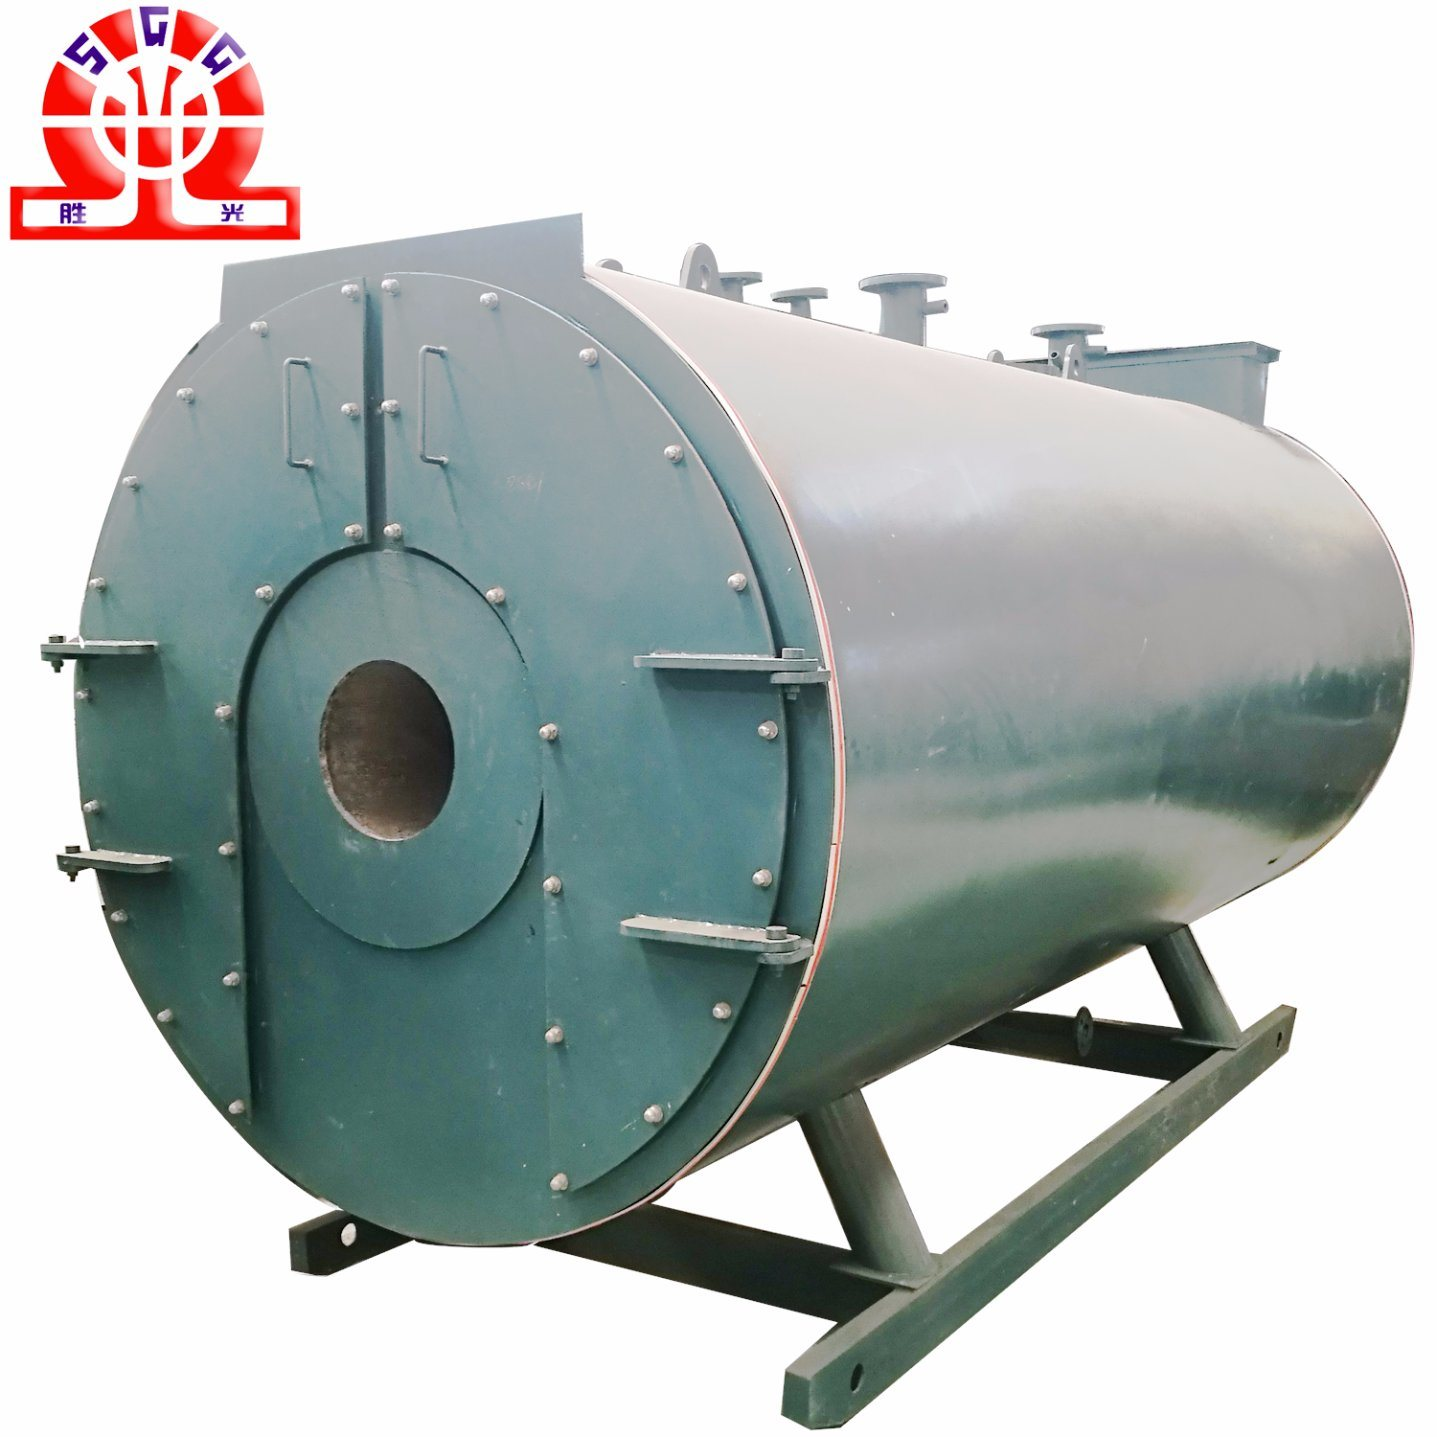 Adequate Heating Gas Fired Steam Boiler for Chemical Factories